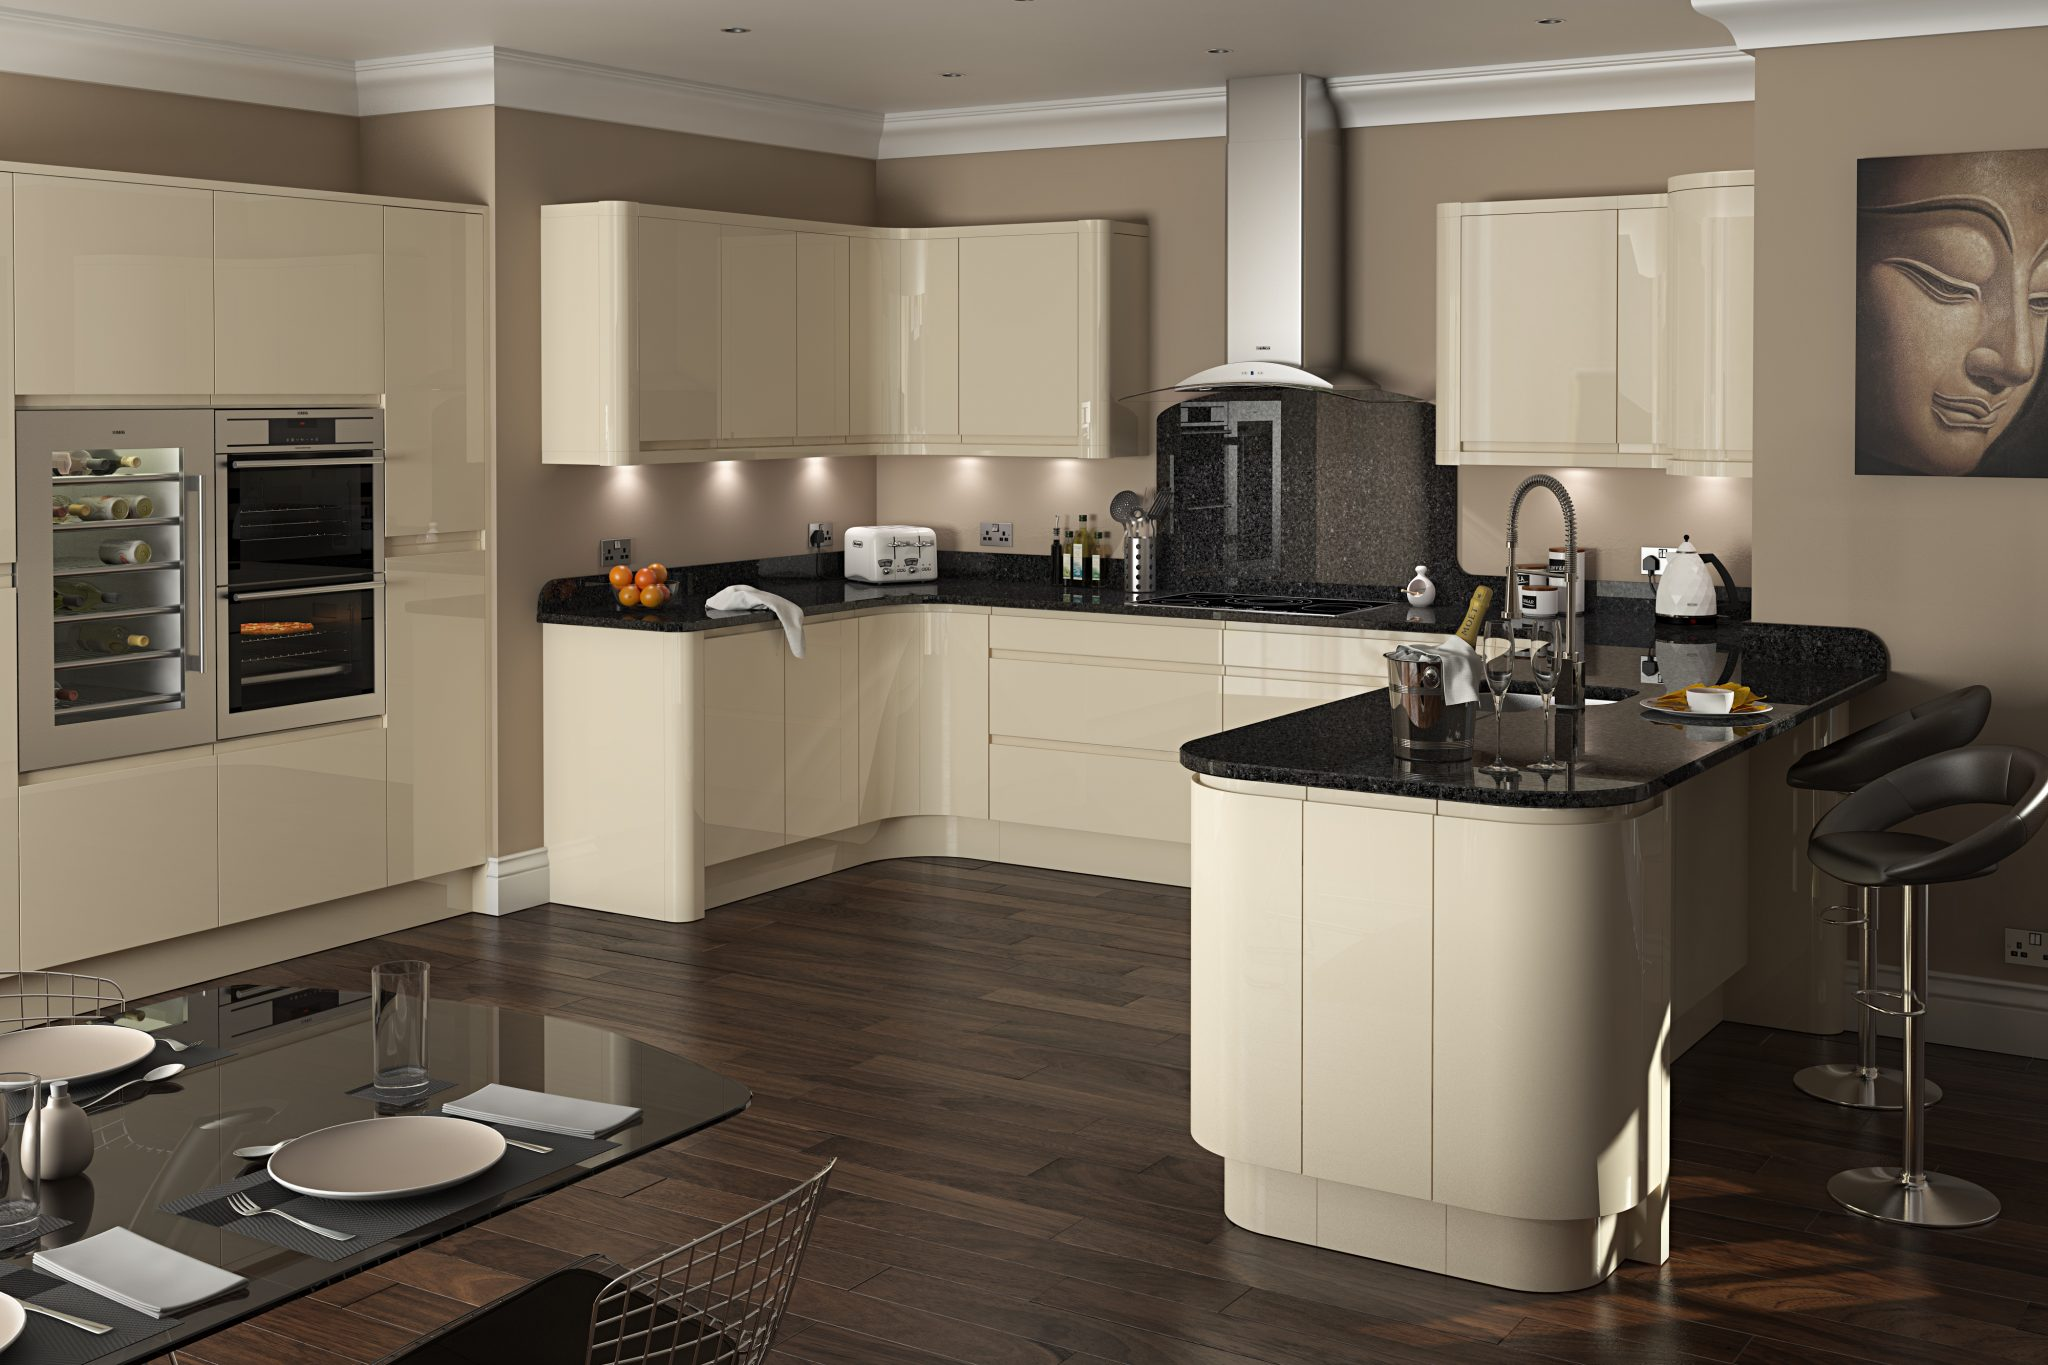 Kitchen design kitchens wirral bespoke luxury designs and ideas wirrals designer specialist Kitchen gallery and design